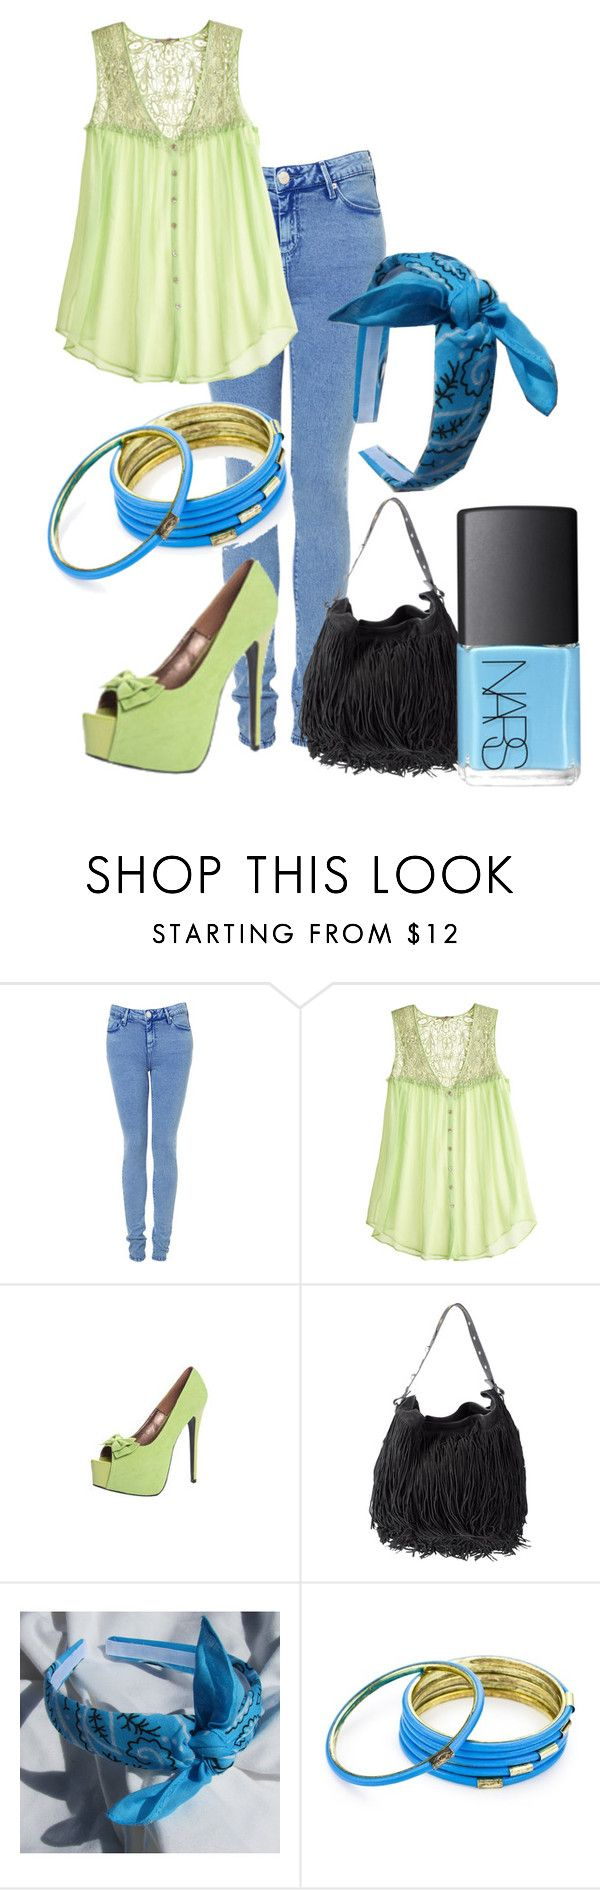 """""""Без названия #6"""" by sofi-20012 ❤ liked on Polyvore featuring Calypso St. Barth, Dsquared2, Beyond Rings and NARS Cosmetics"""